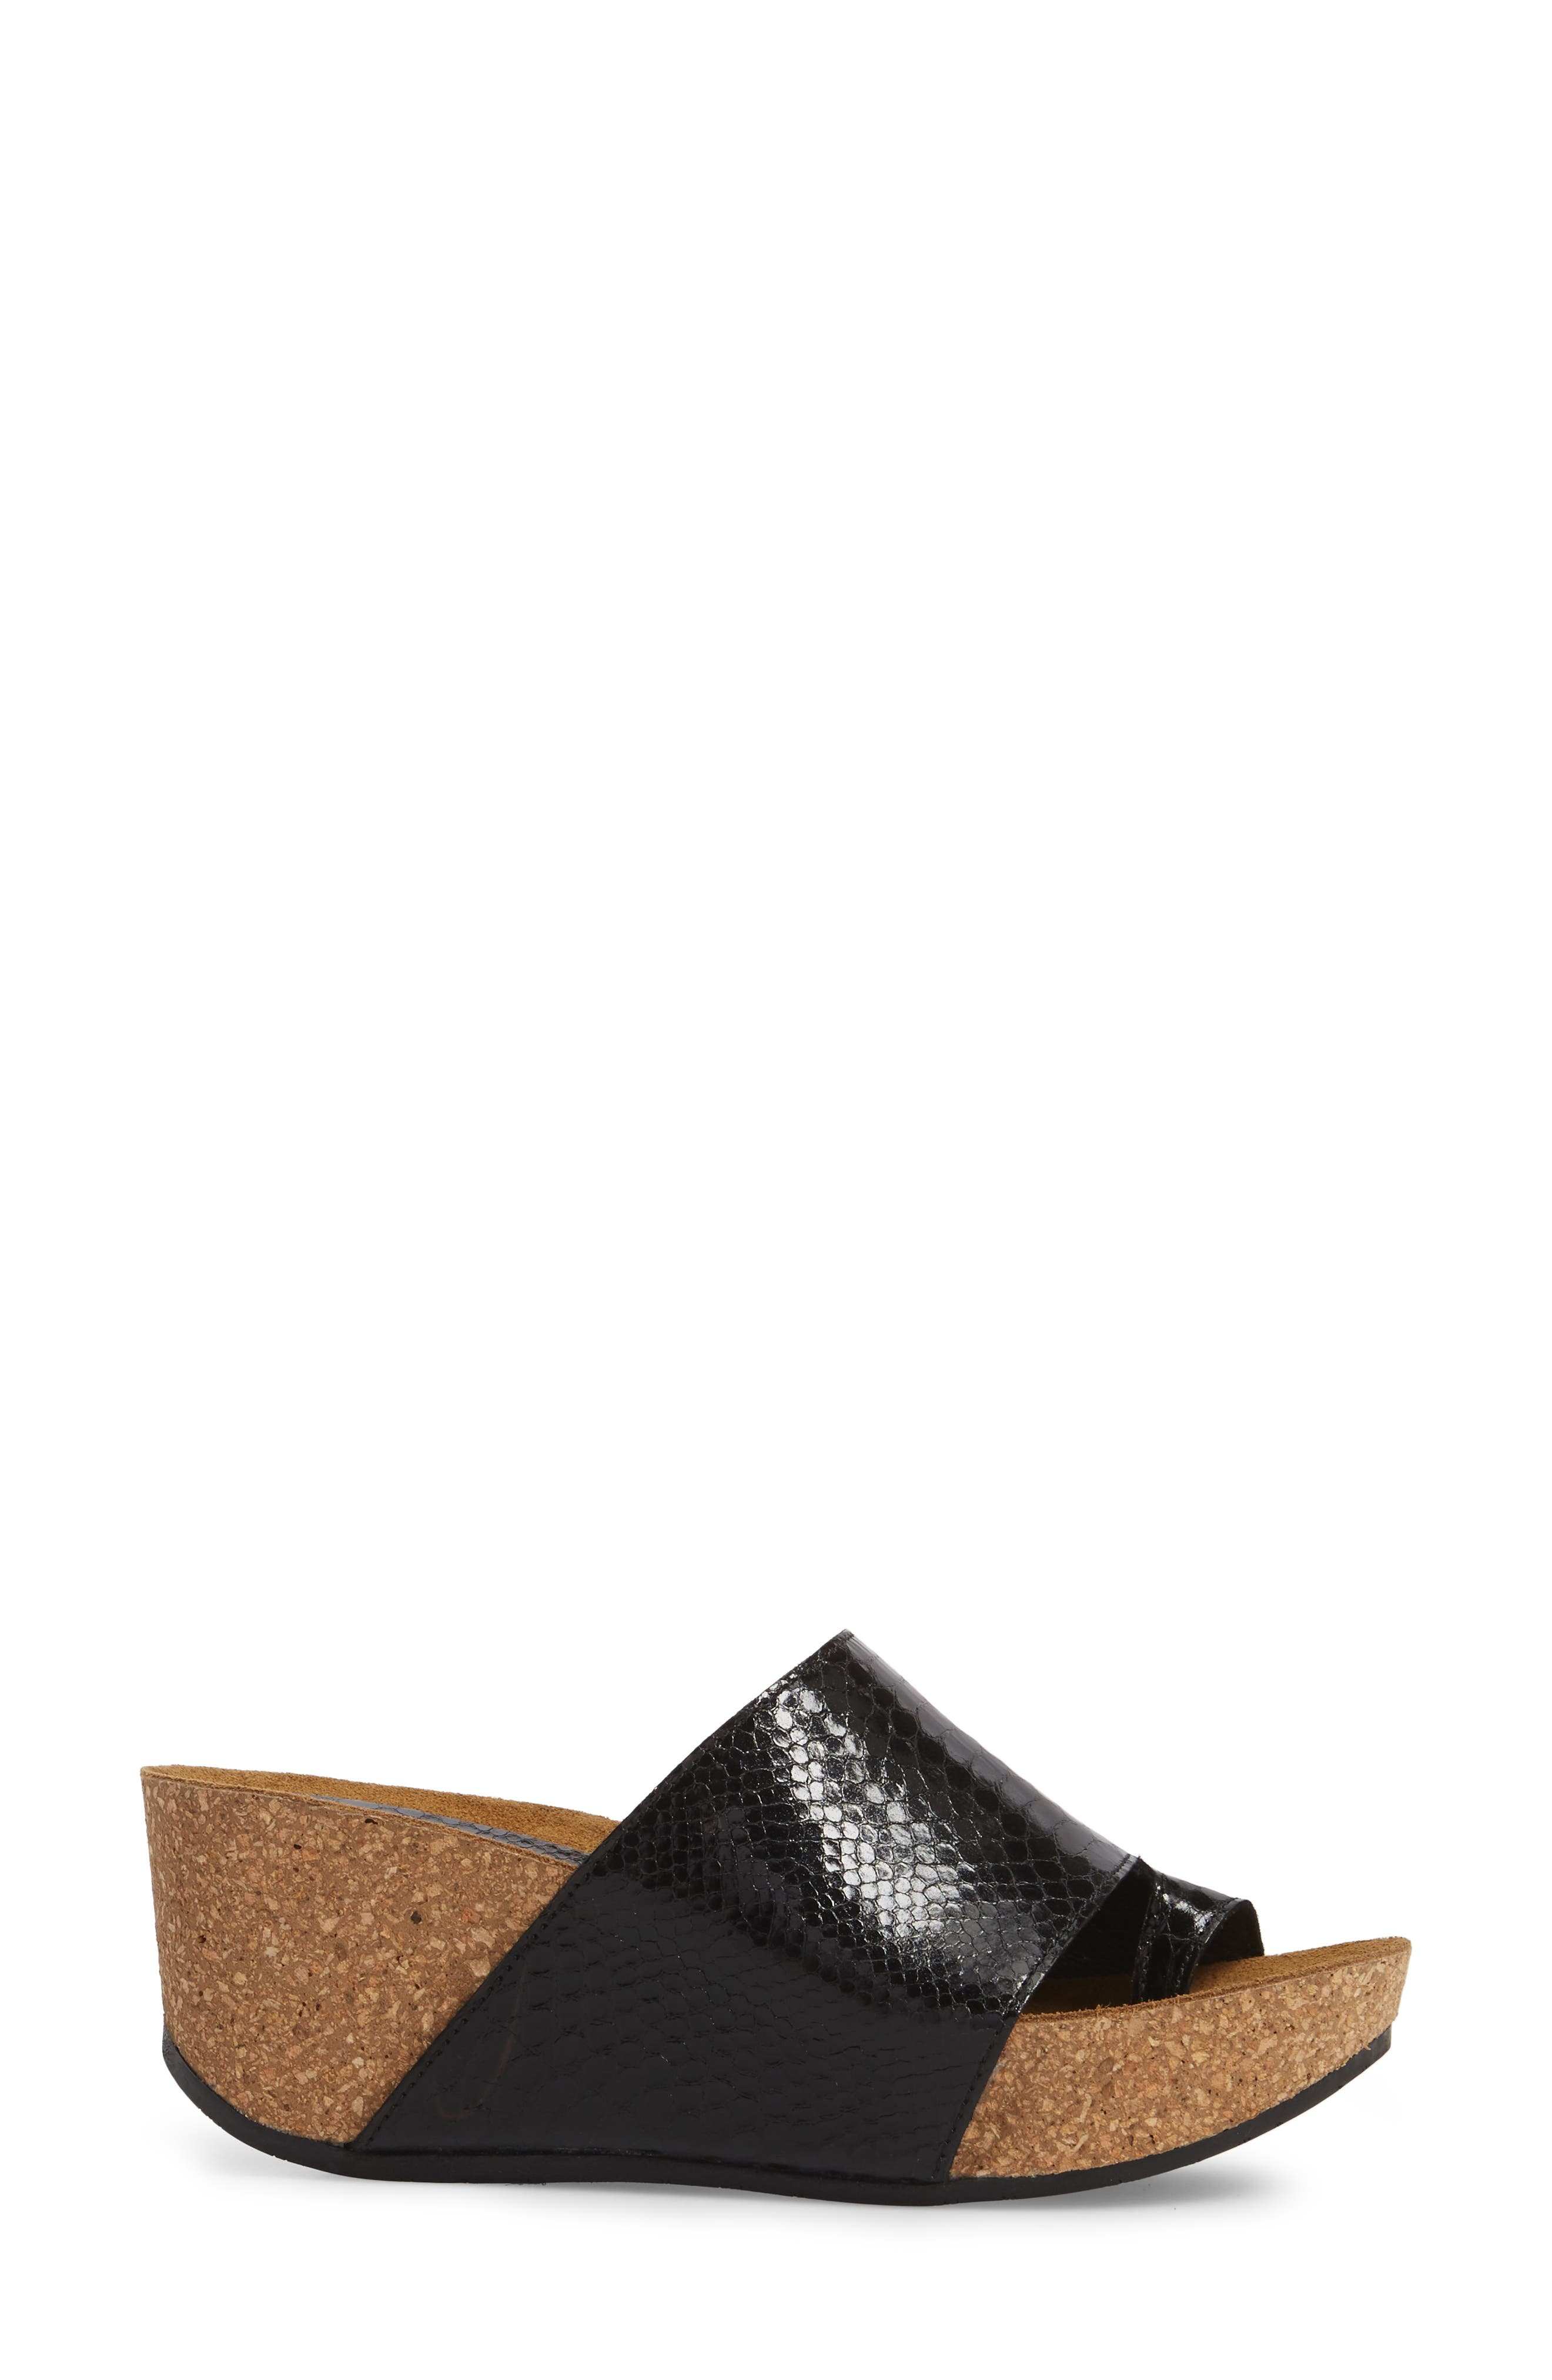 Donald J Pliner Ginie Platform Wedge Sandal,                             Alternate thumbnail 16, color,